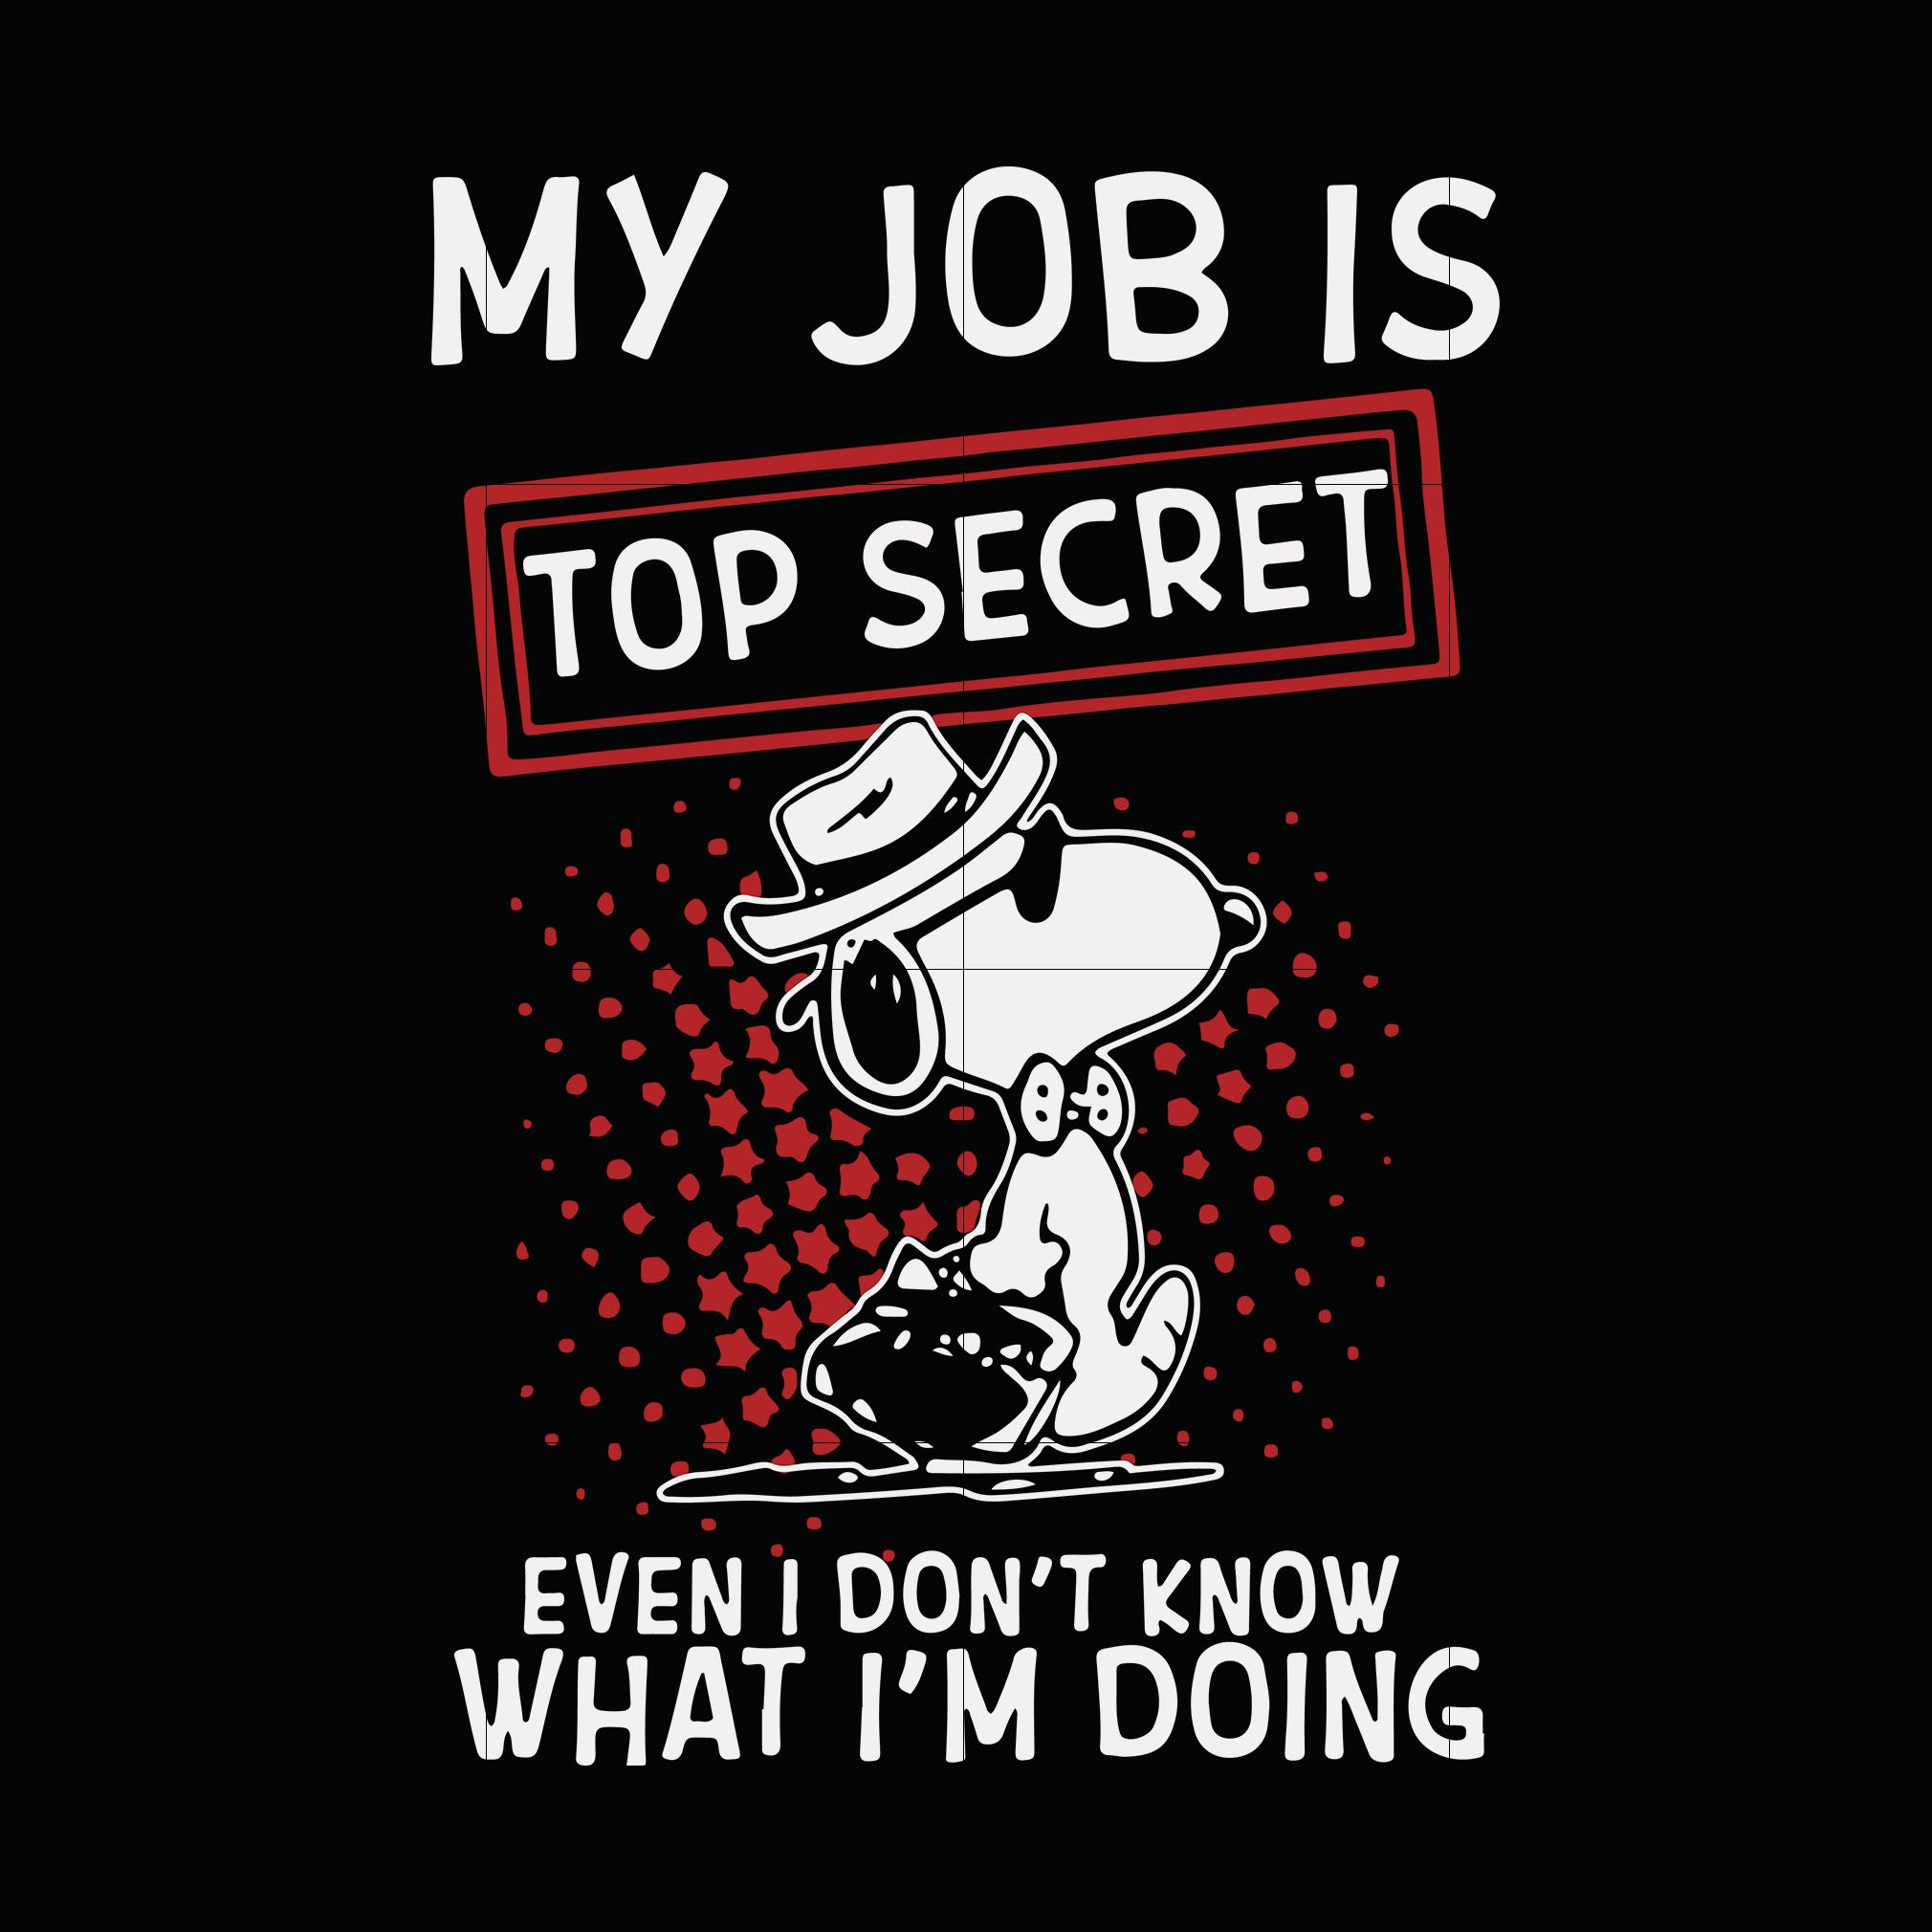 My job is top secret even i don't know what i'm doing svg,dxf,eps,png digital file